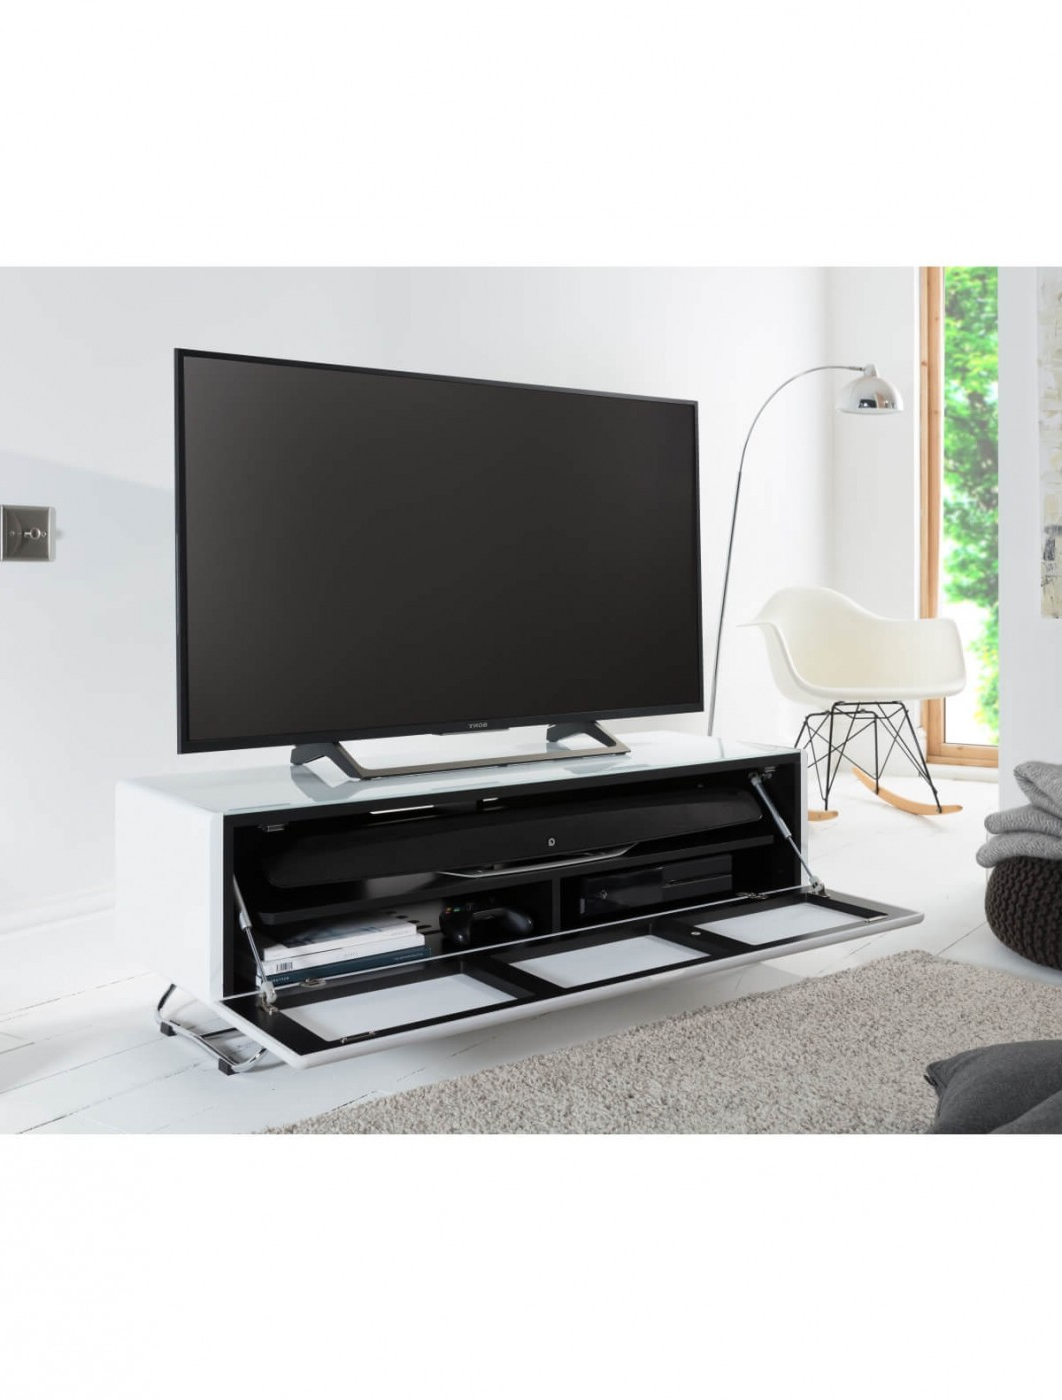 57'' Tv Stands With Open Glass Shelves Gray & Black Finsh With Regard To 2017 Tv Stand White Chromium Concept 1200mm Cro2 1200cpt Wh (View 6 of 10)